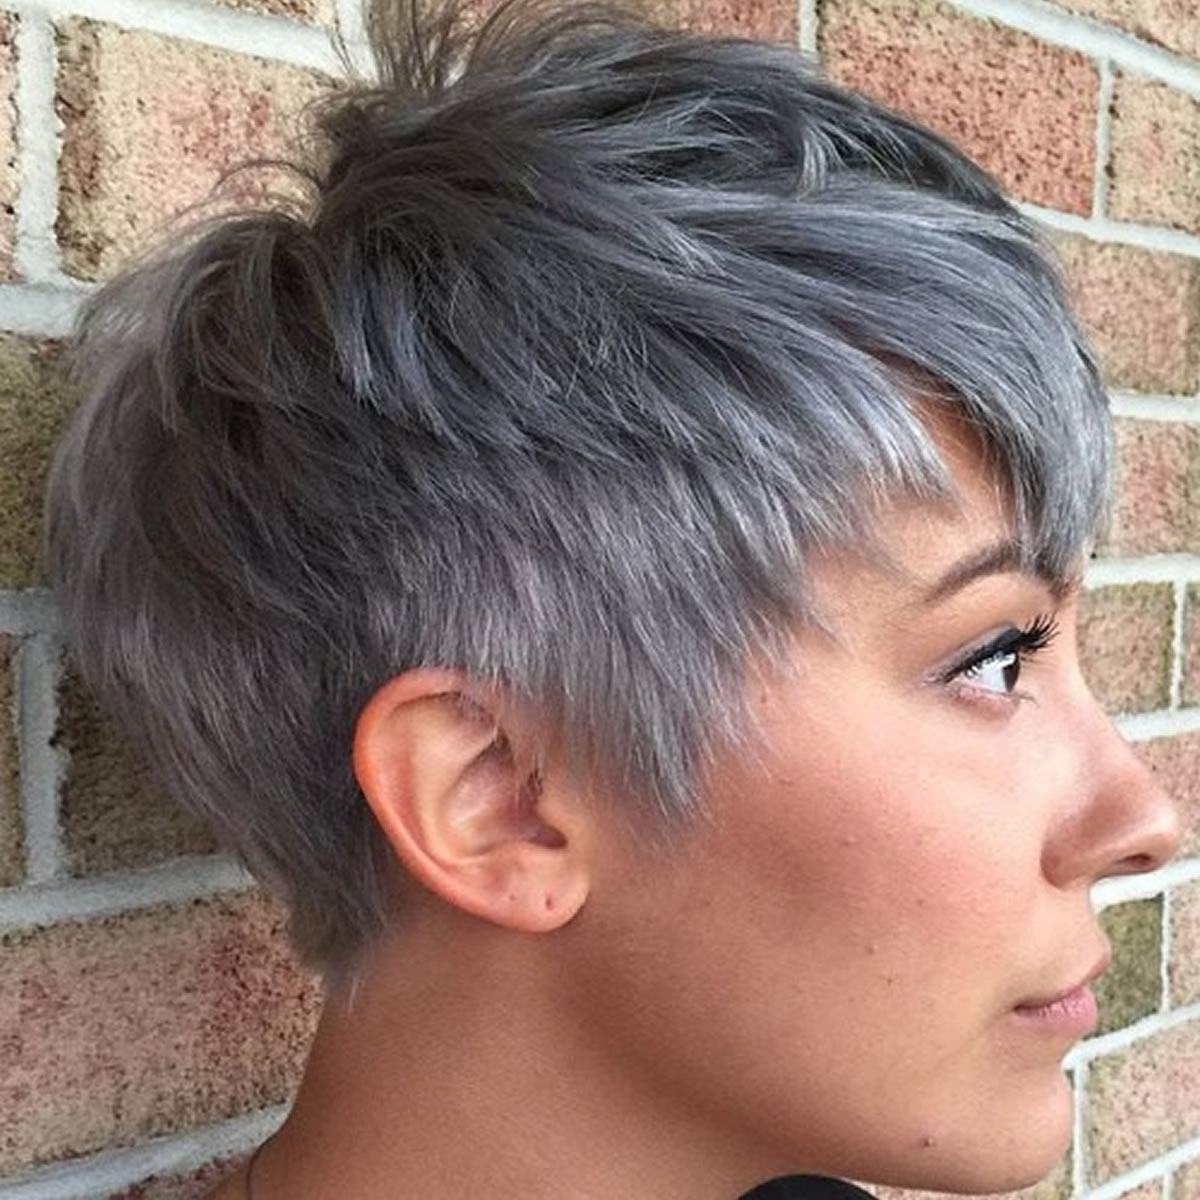 Pixie Hairstyles Short Hair 2019 And Inspiration For Women With